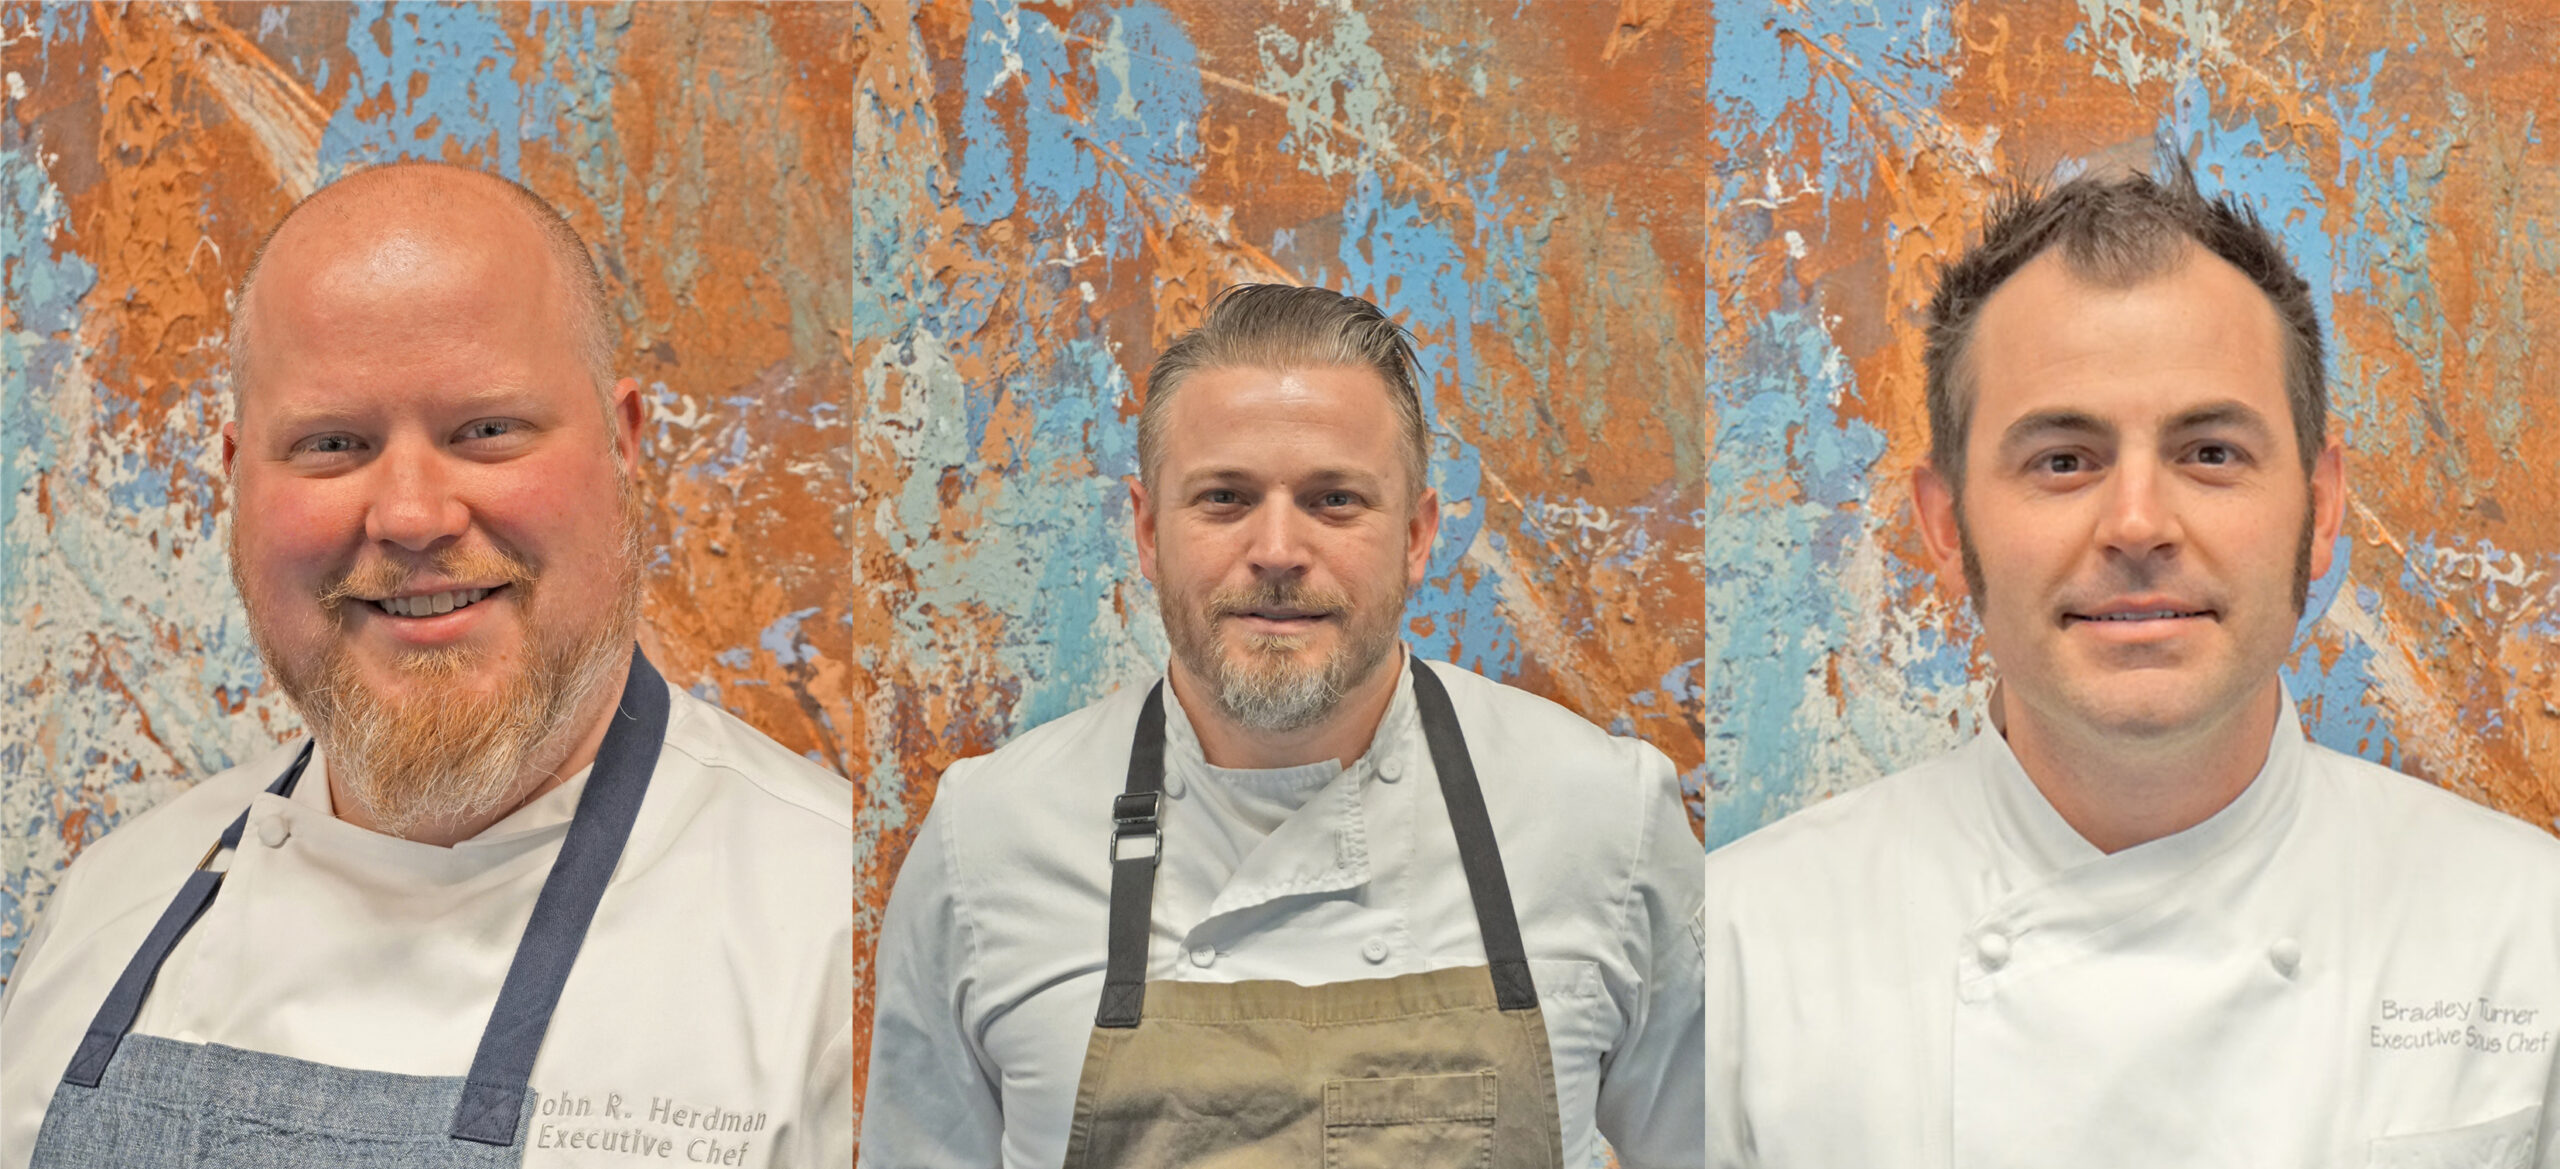 The Carillon Restaurant Chef Team in Austin